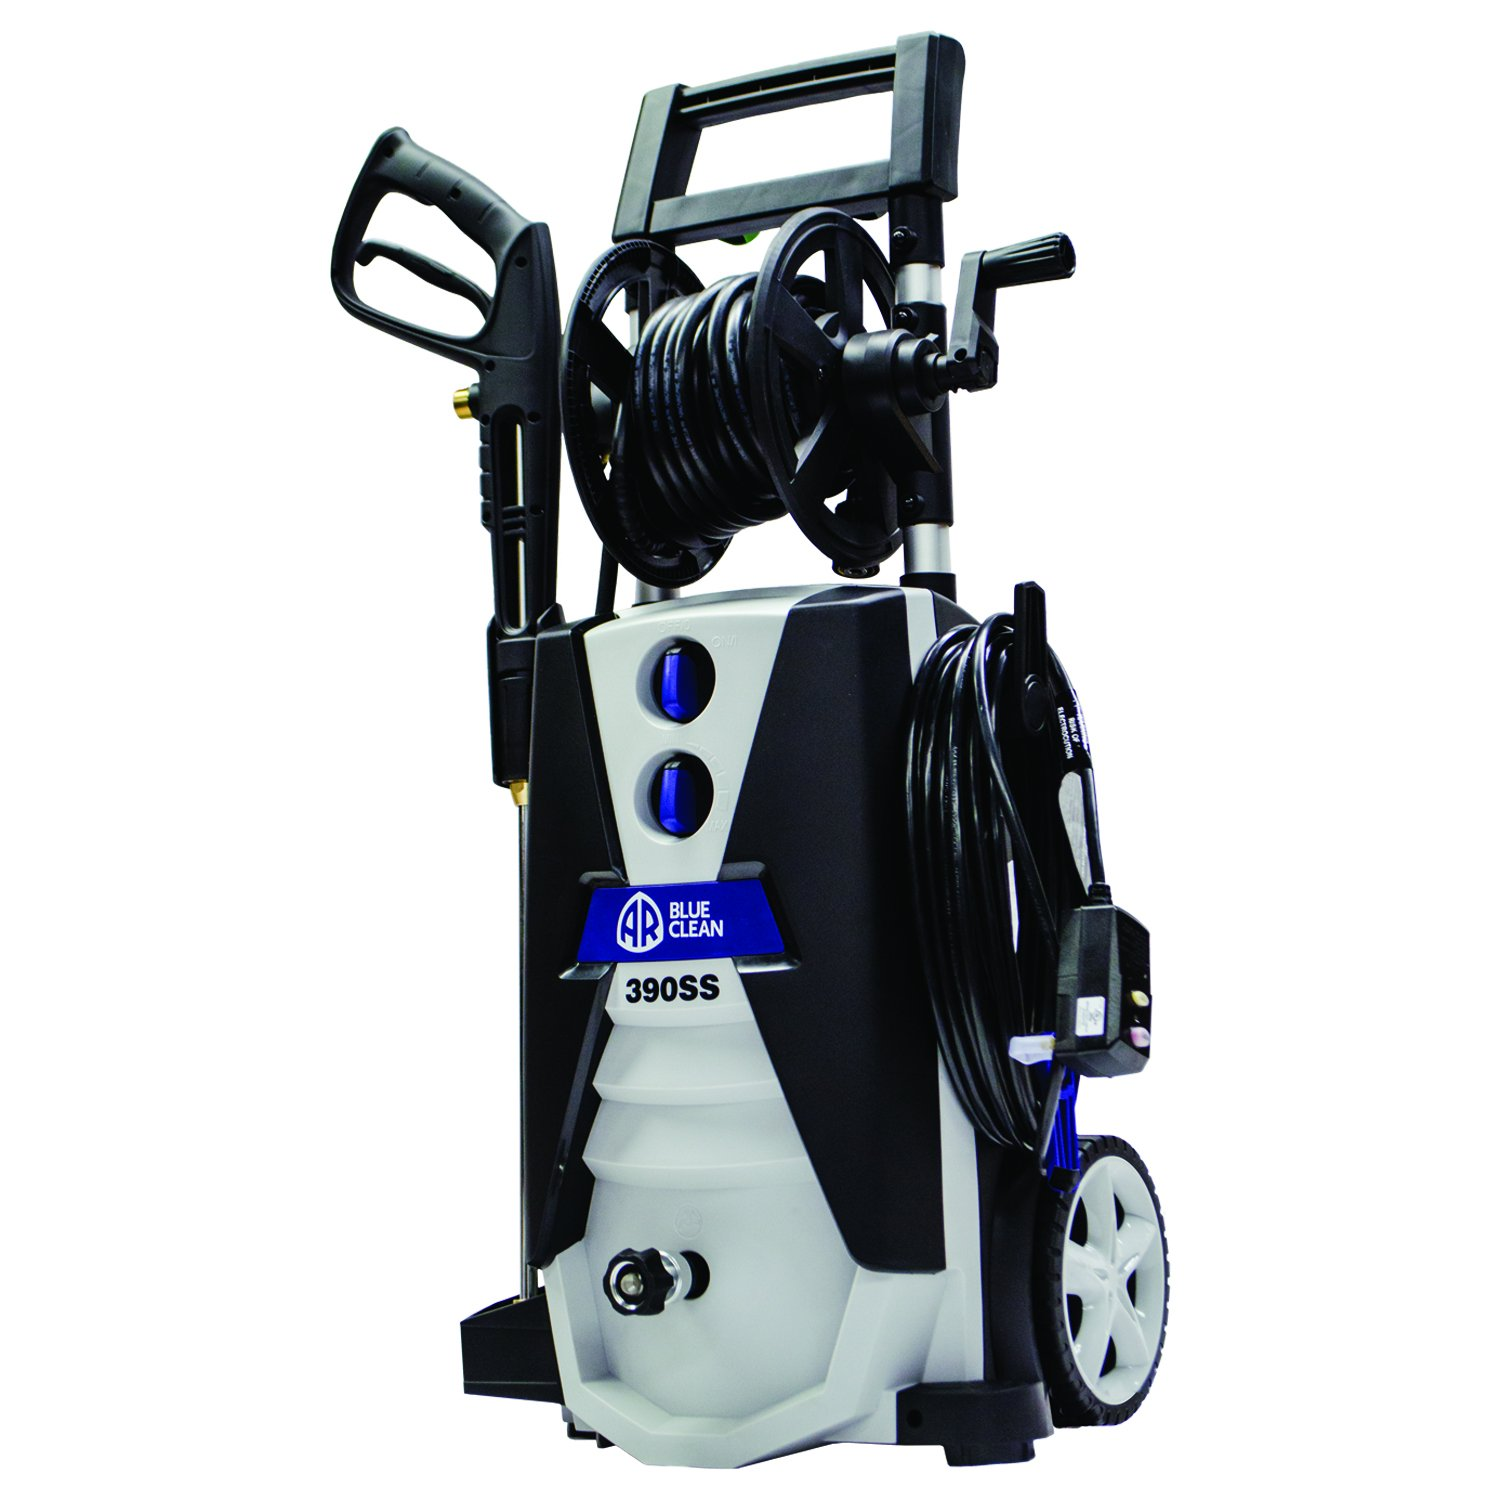 AR Blue Clean AR390SS 2000 psi Electric Pressure Washer with Spray Gun, Wand, 30' Hose & 35' Power Cord, Blue by Annovi Reverberi (Image #2)